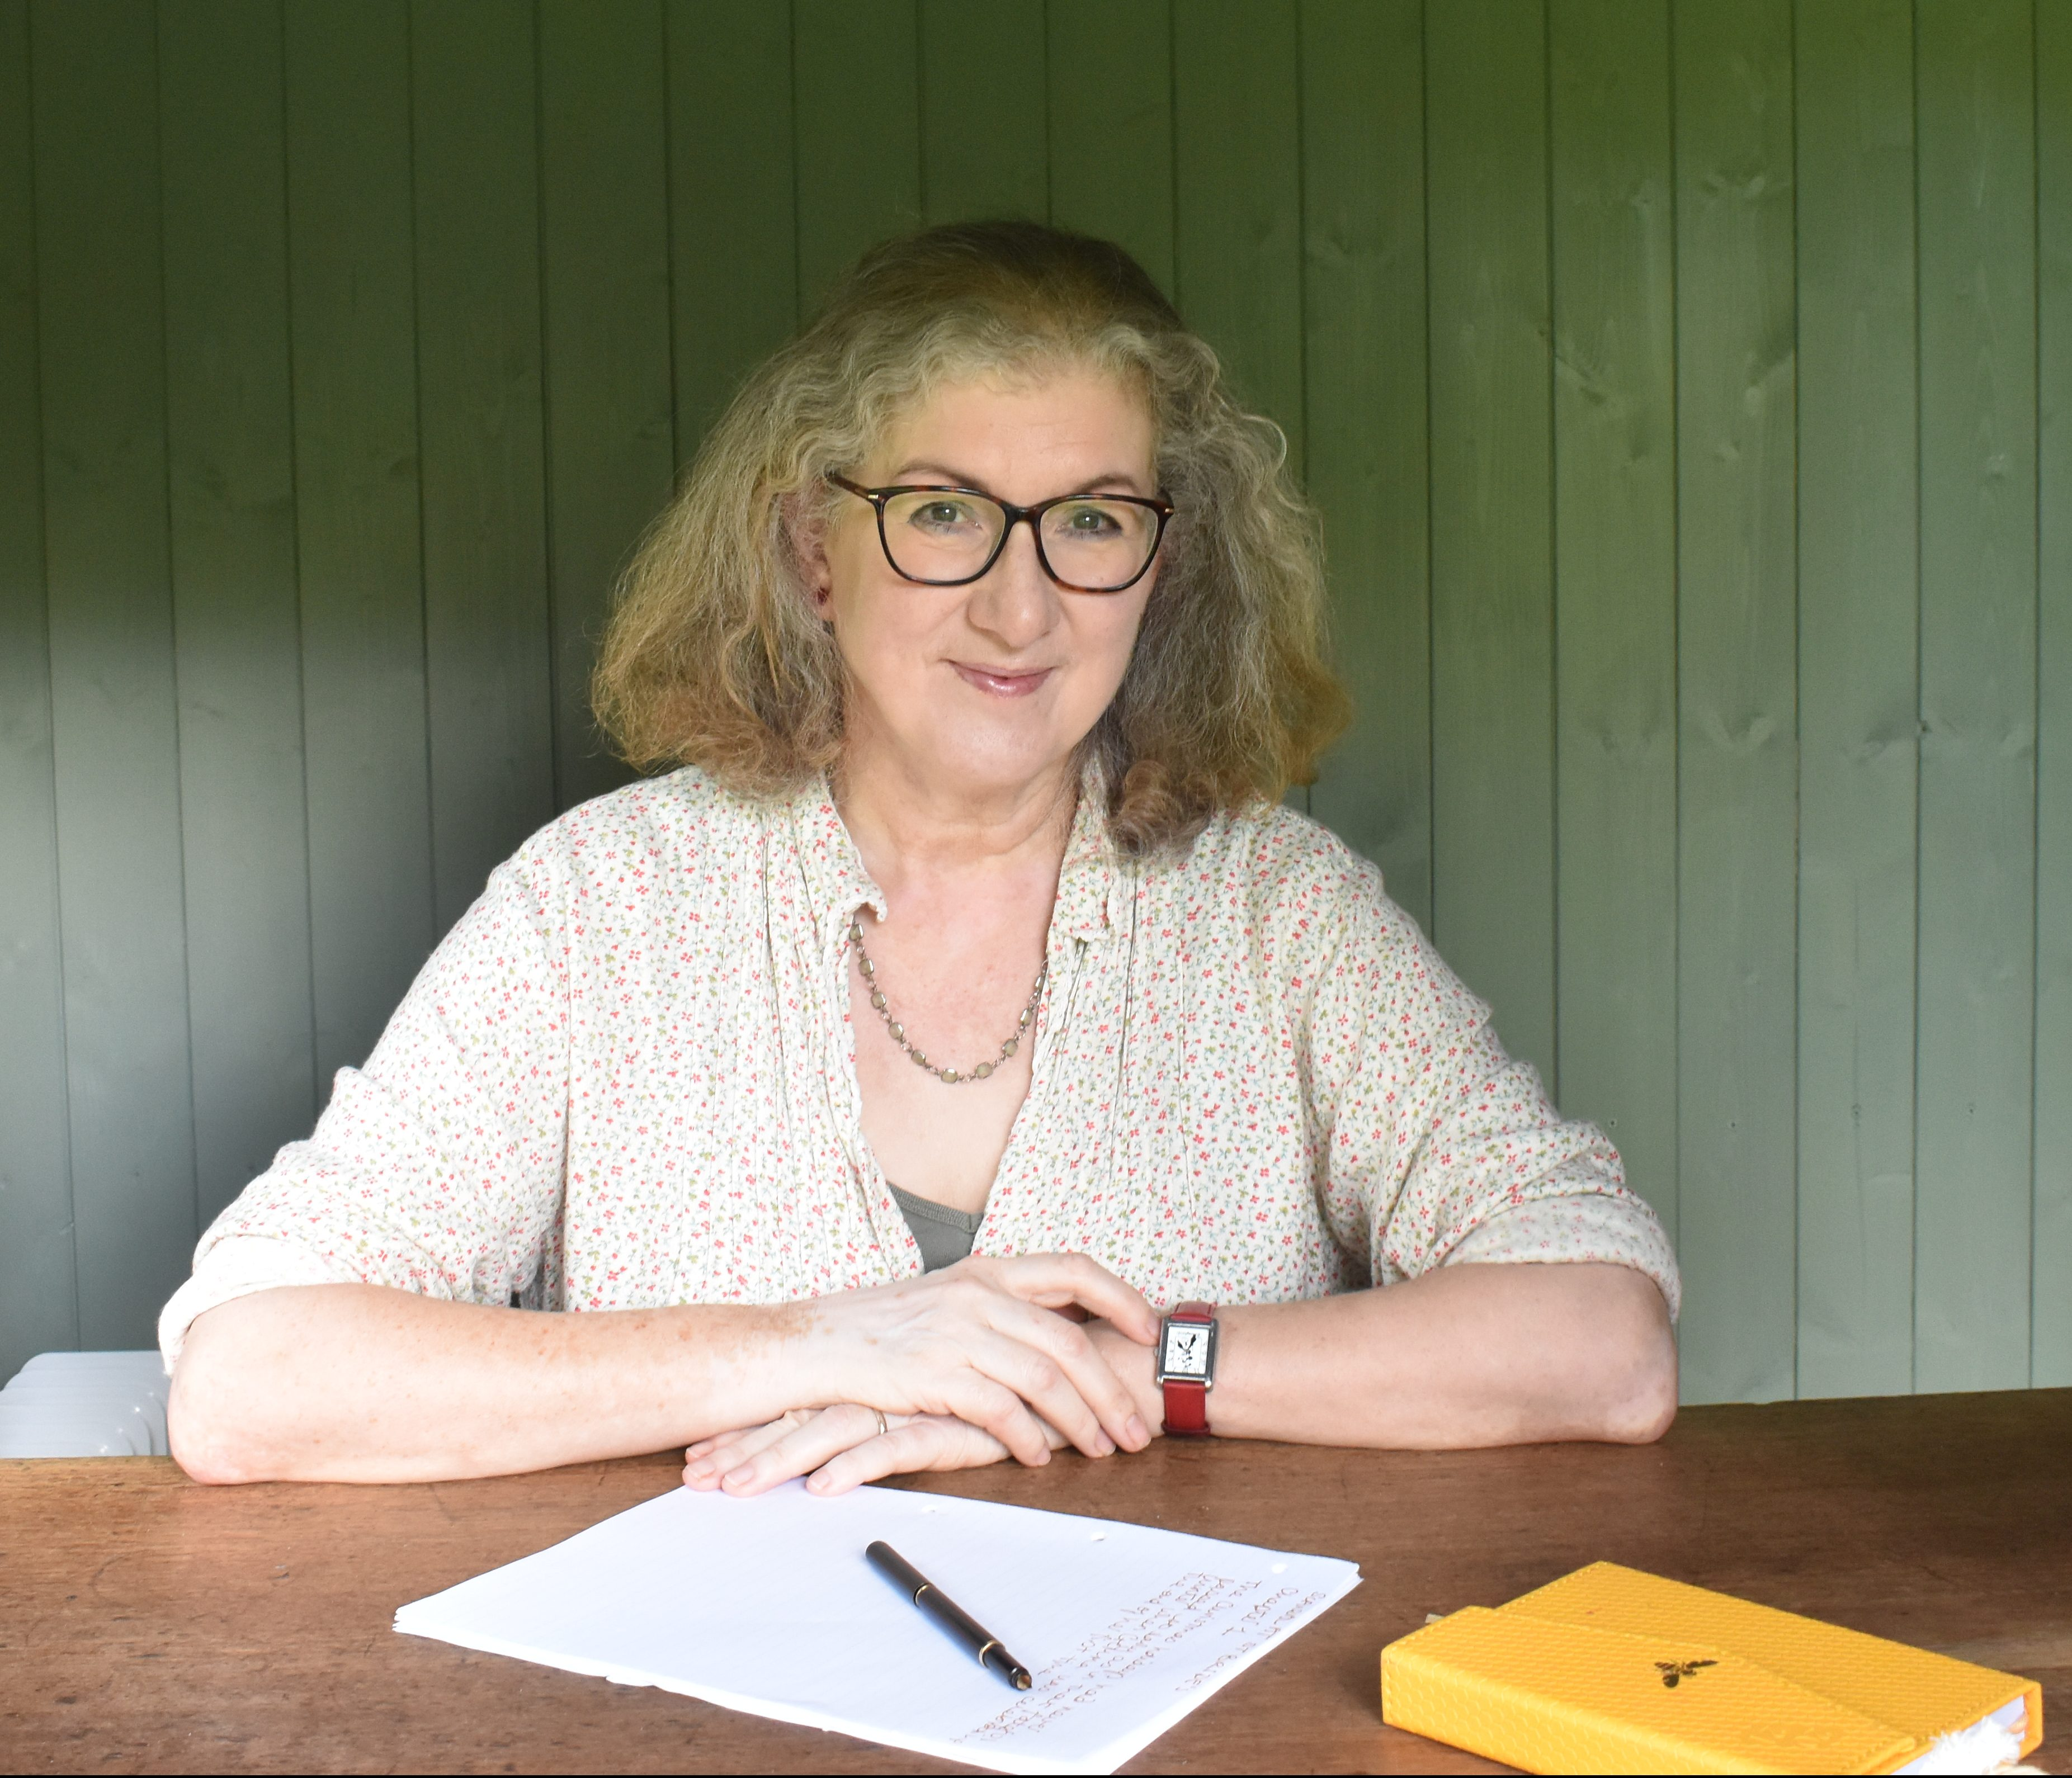 Photo of the author at work in her writing hut